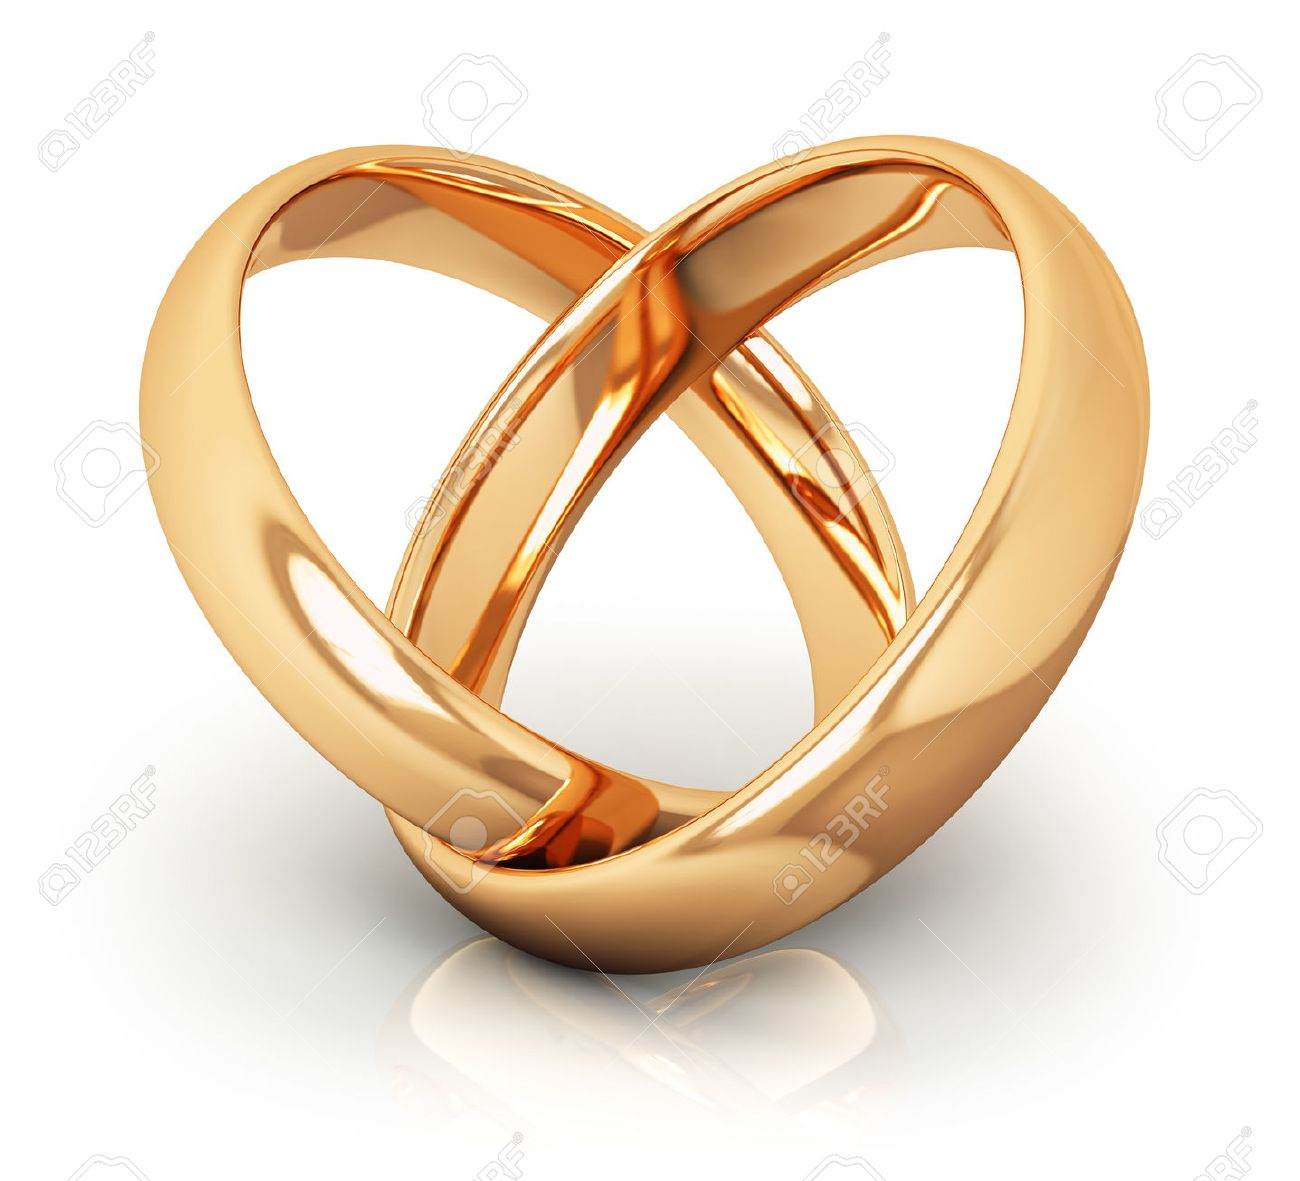 hight resolution of creative abstract love engagement proposal and matrimony concept macro view of pair of